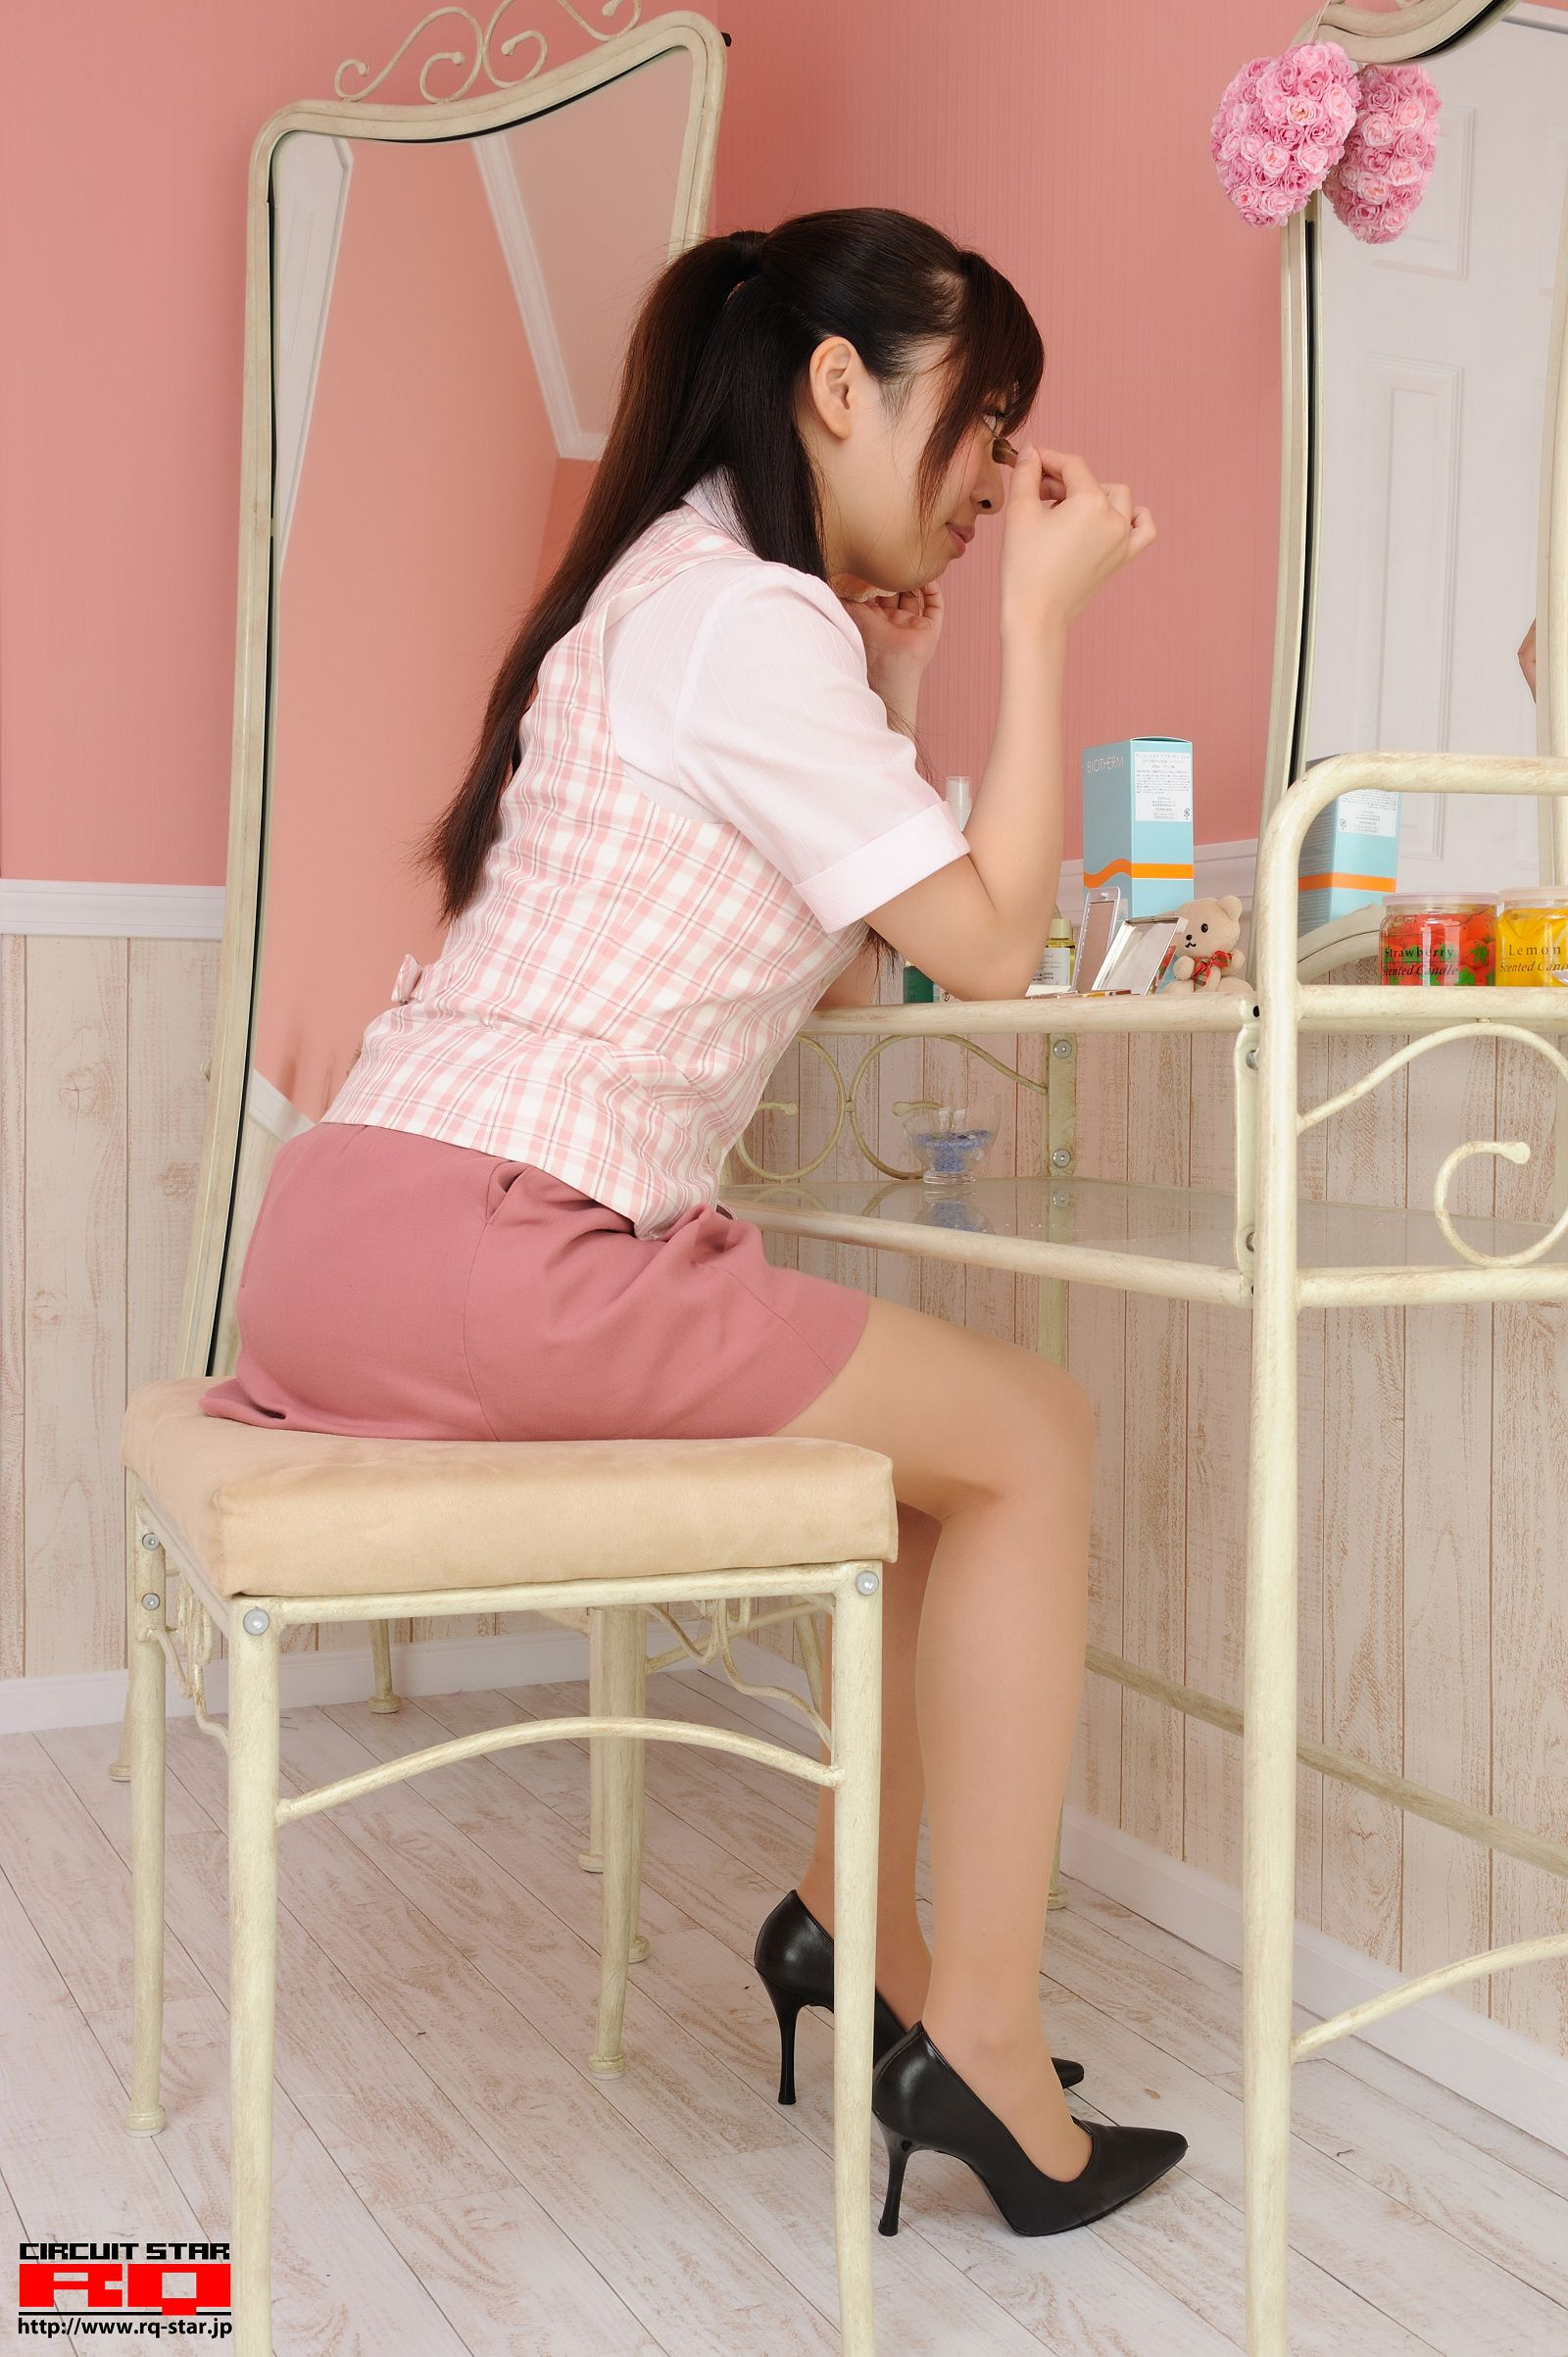 [RQ STAR美女] NO.00519 Mayuka Kuroda 锿蚪Y花 Office Lady[96P] RQ STAR 第1张